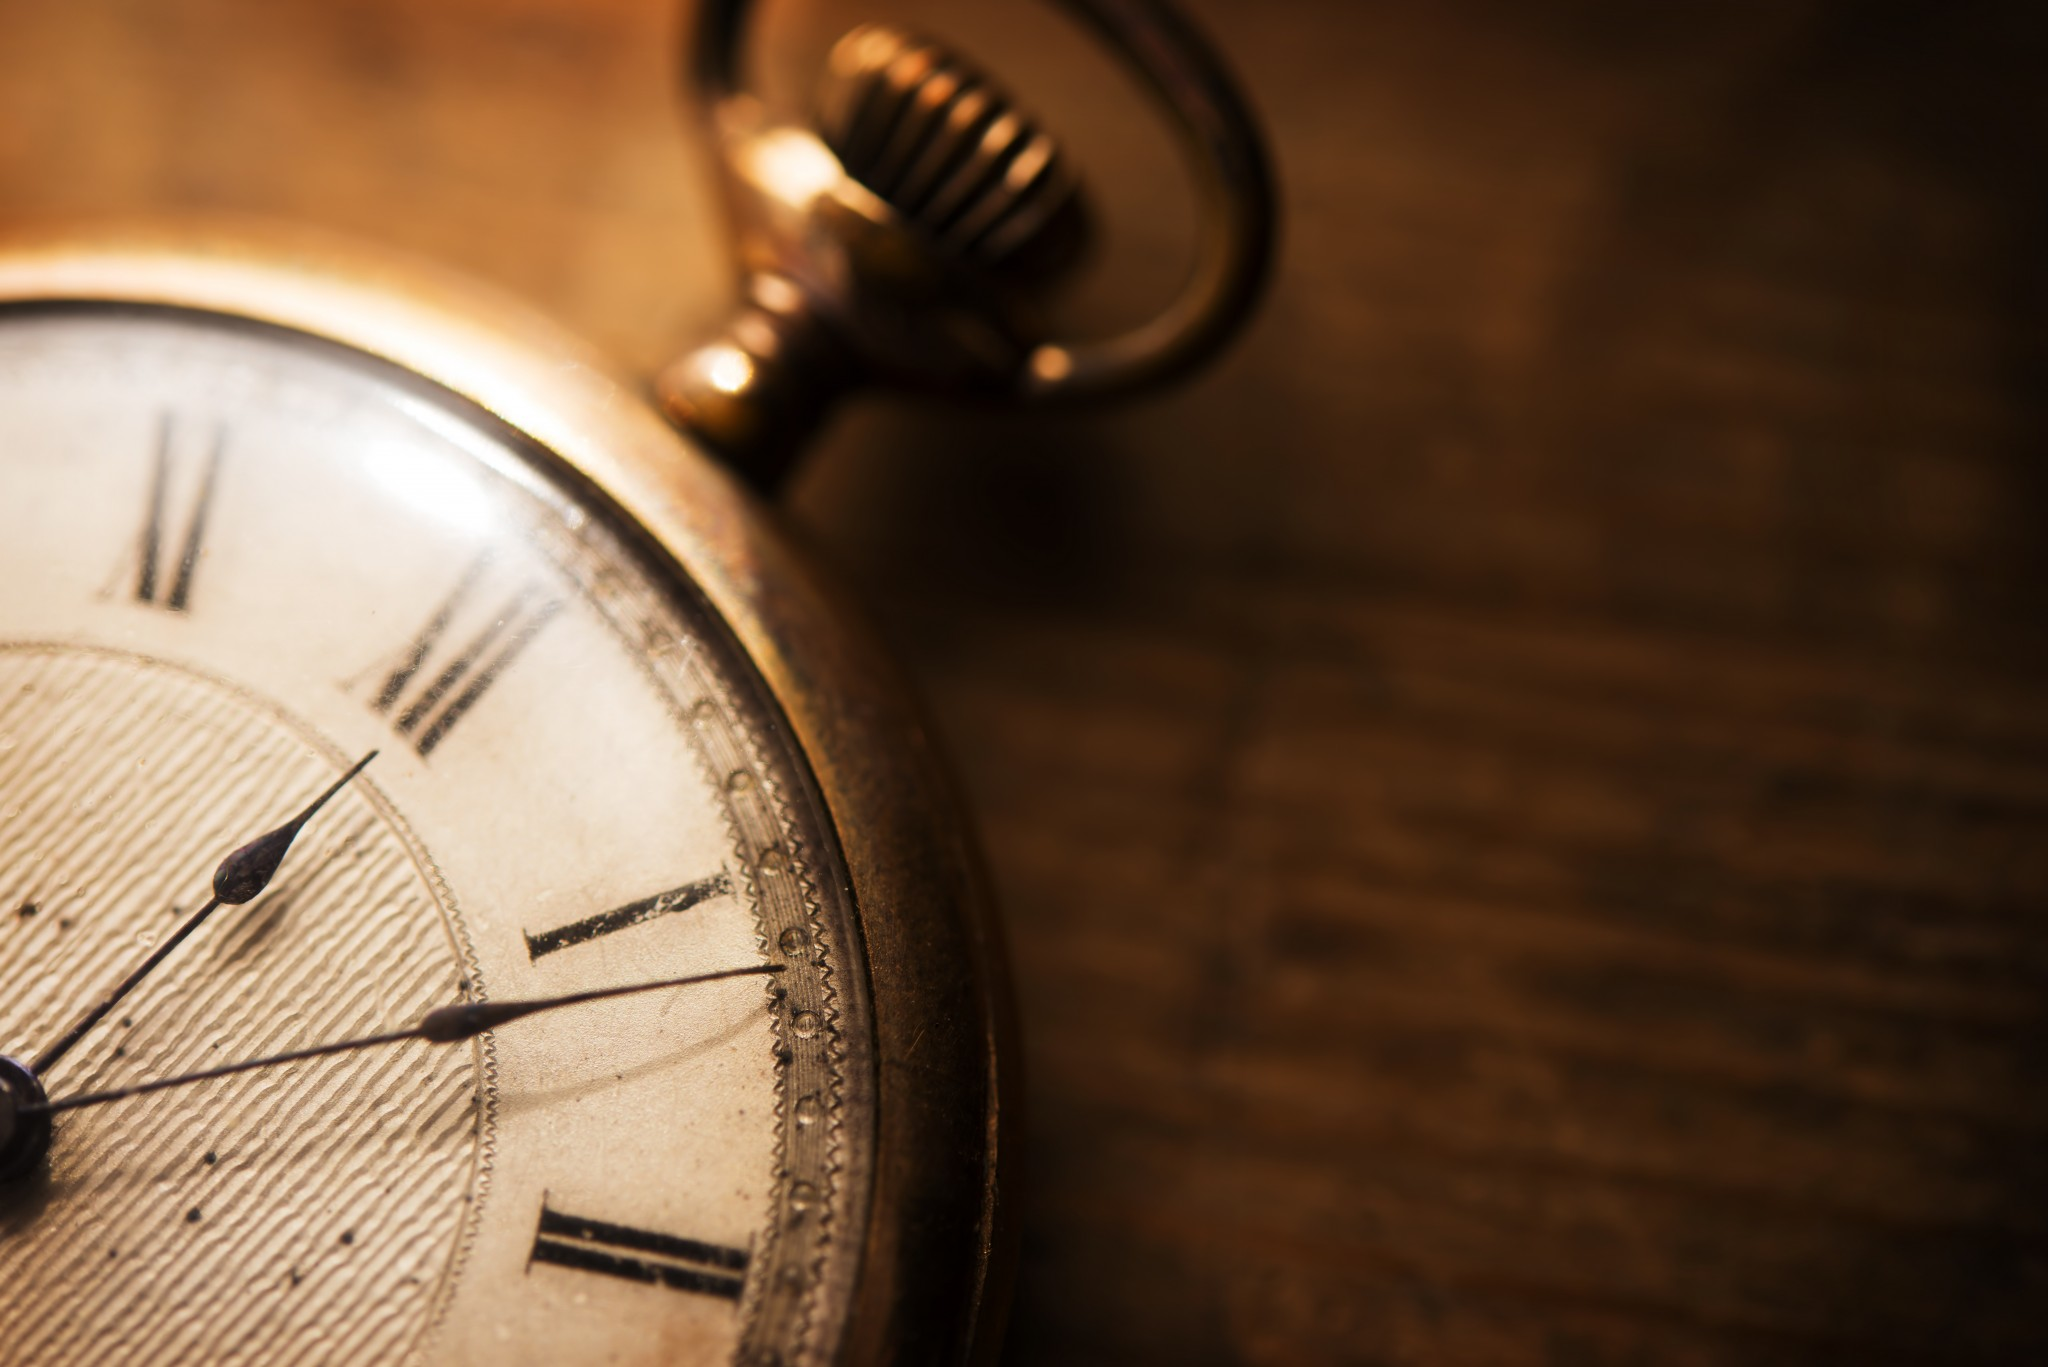 bigstock-Old-pocket-watch-on-grungy-woo-95969576